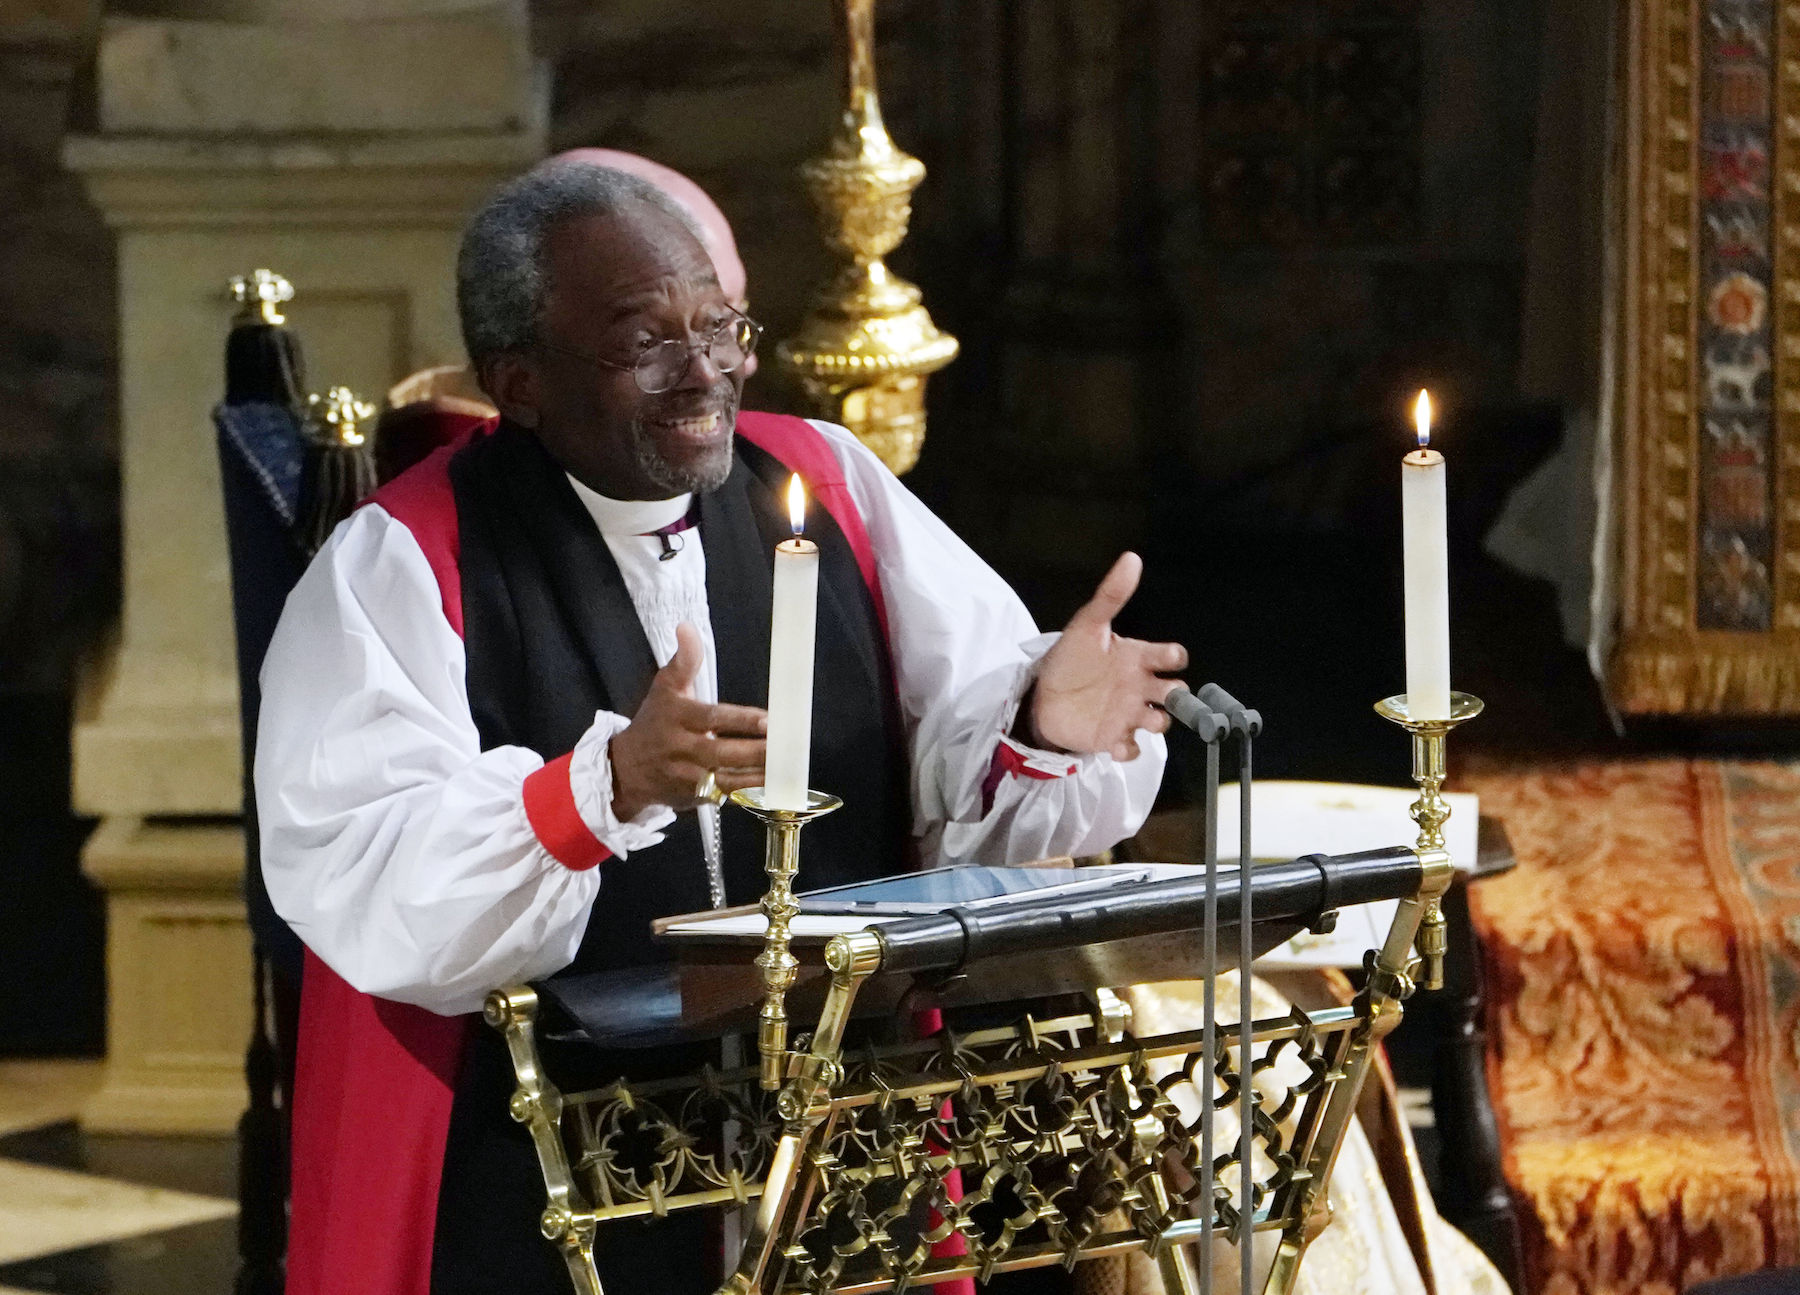 "<div class=""meta image-caption""><div class=""origin-logo origin-image wls""><span>wls</span></div><span class=""caption-text"">The Most Rev Bishop Michael Curry, primate of the Episcopal Church, gives an address during the wedding of Prince Harry and Meghan Markle. (Owen Humphreys/AFP/Getty Images)</span></div>"